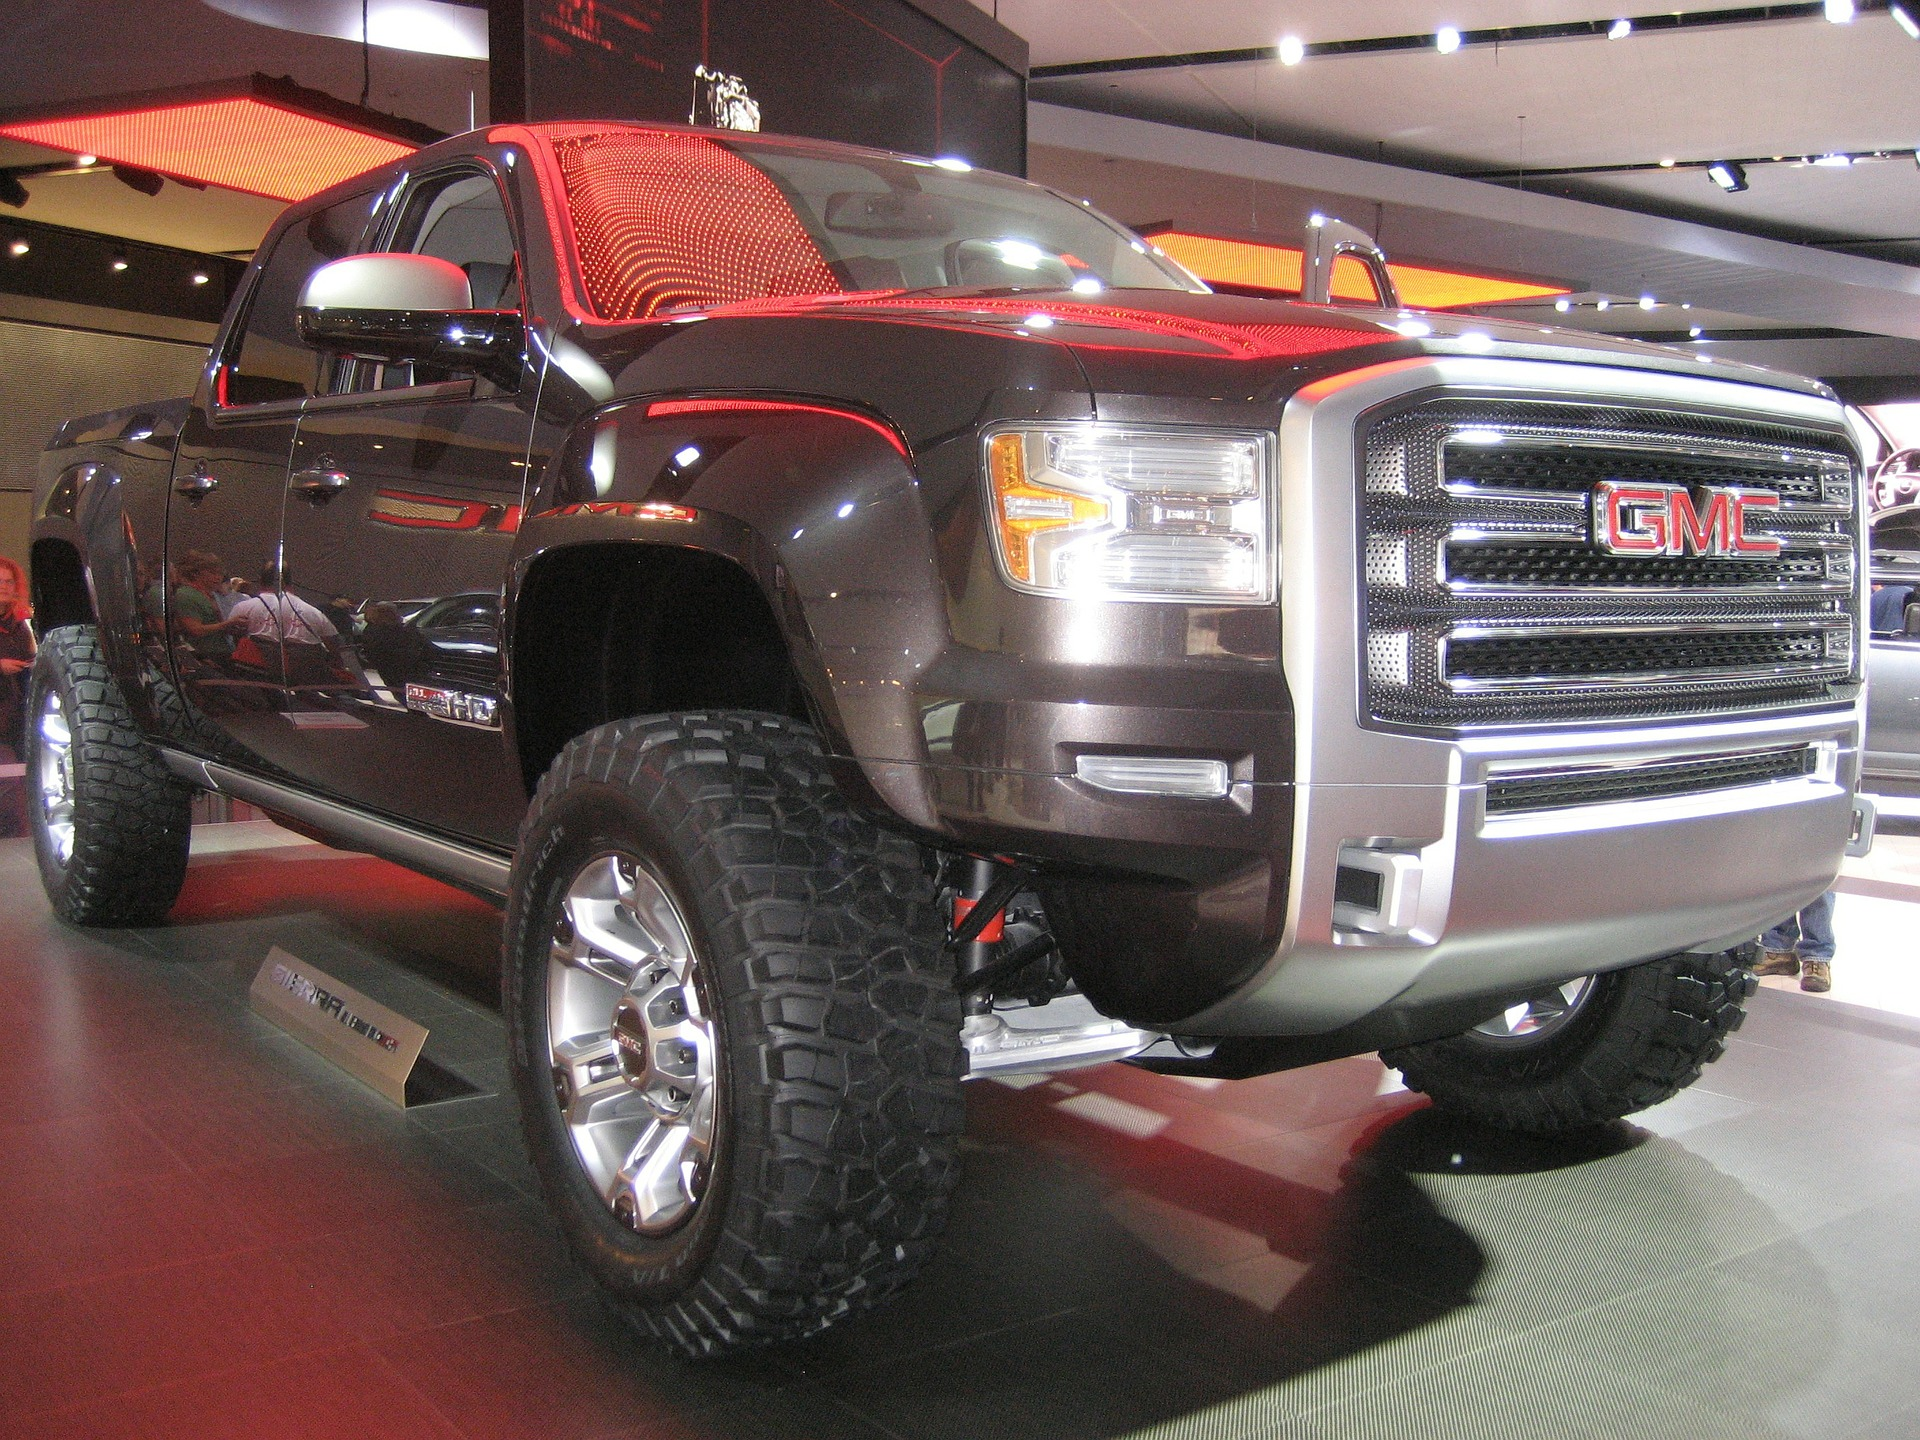 Image of a GMC